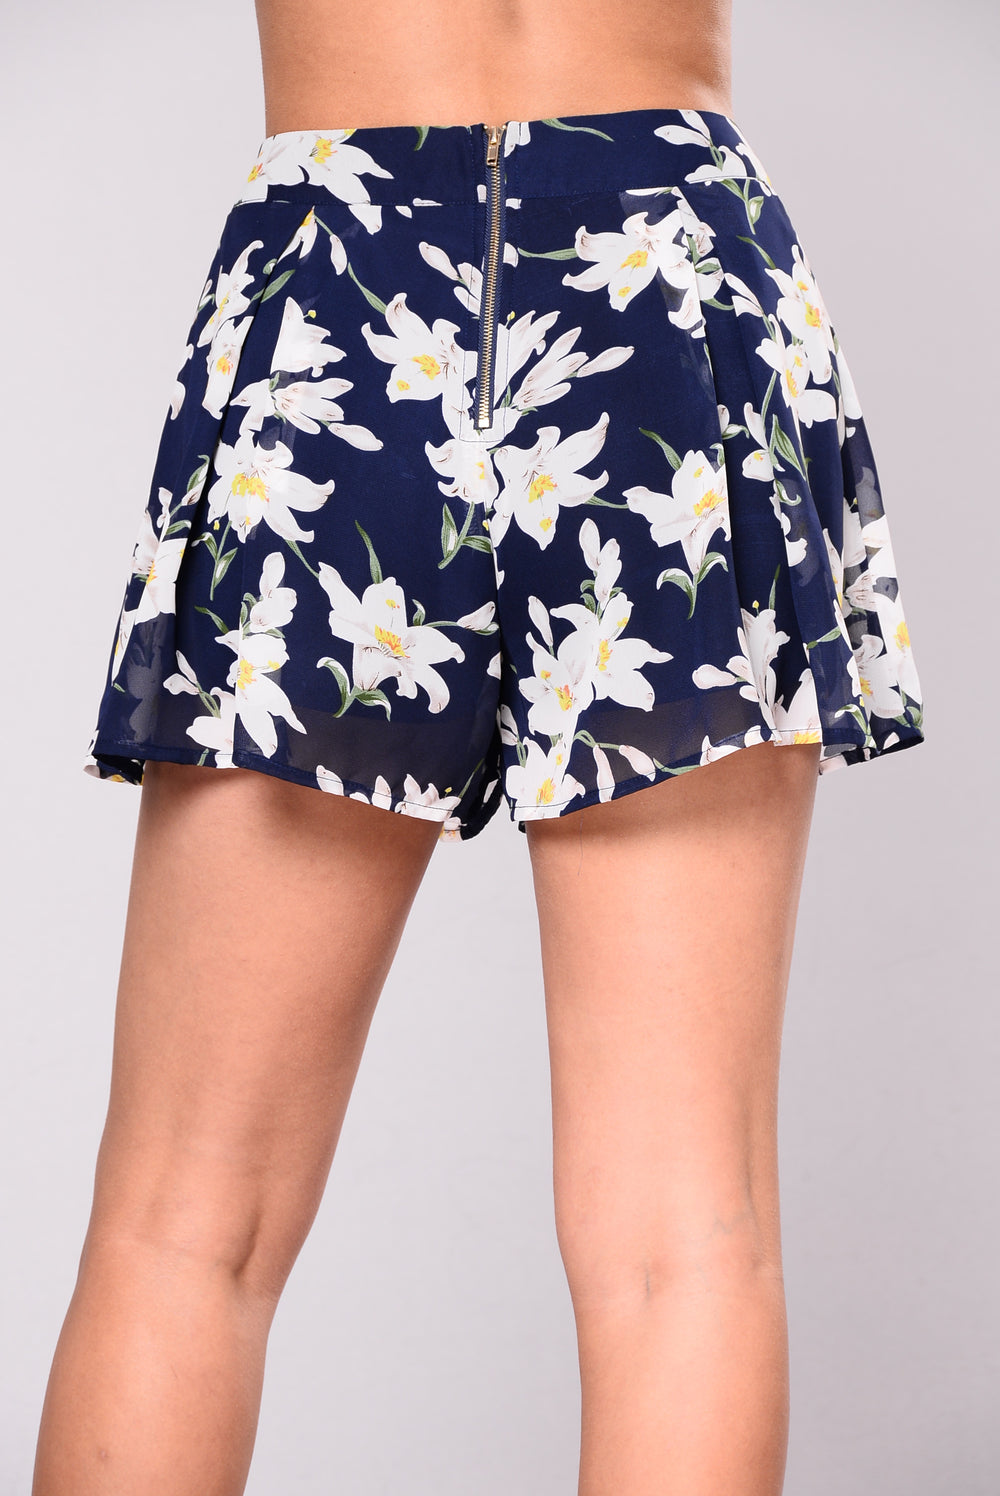 This Love Is A Sure Thing Set - Navy Floral